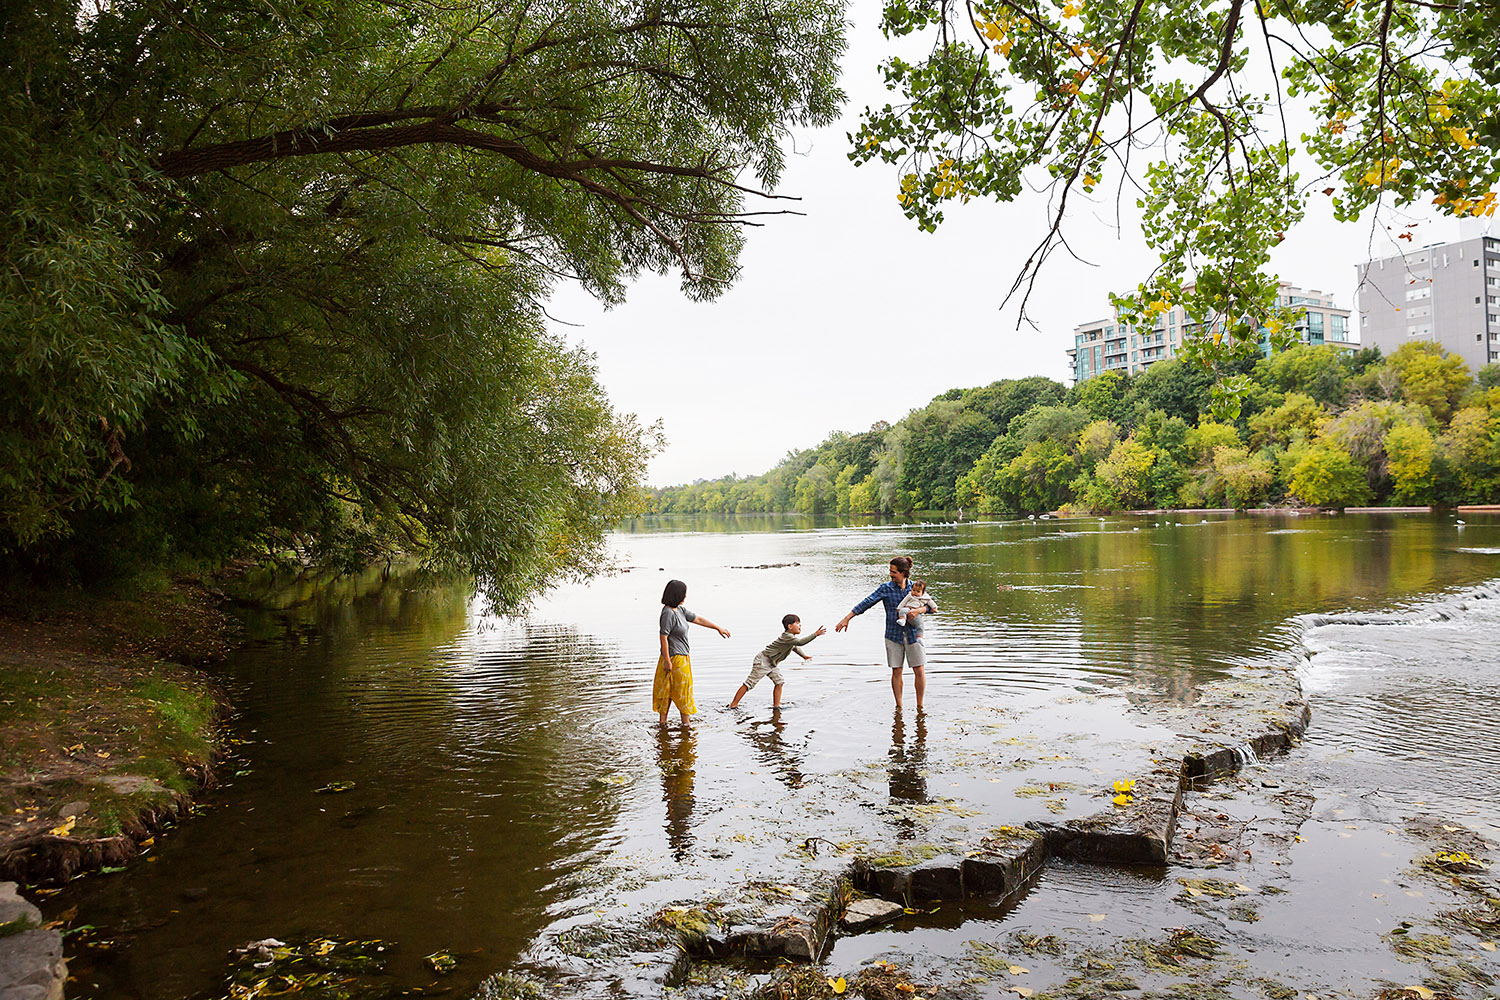 Family wading in the river in the Ottawa area